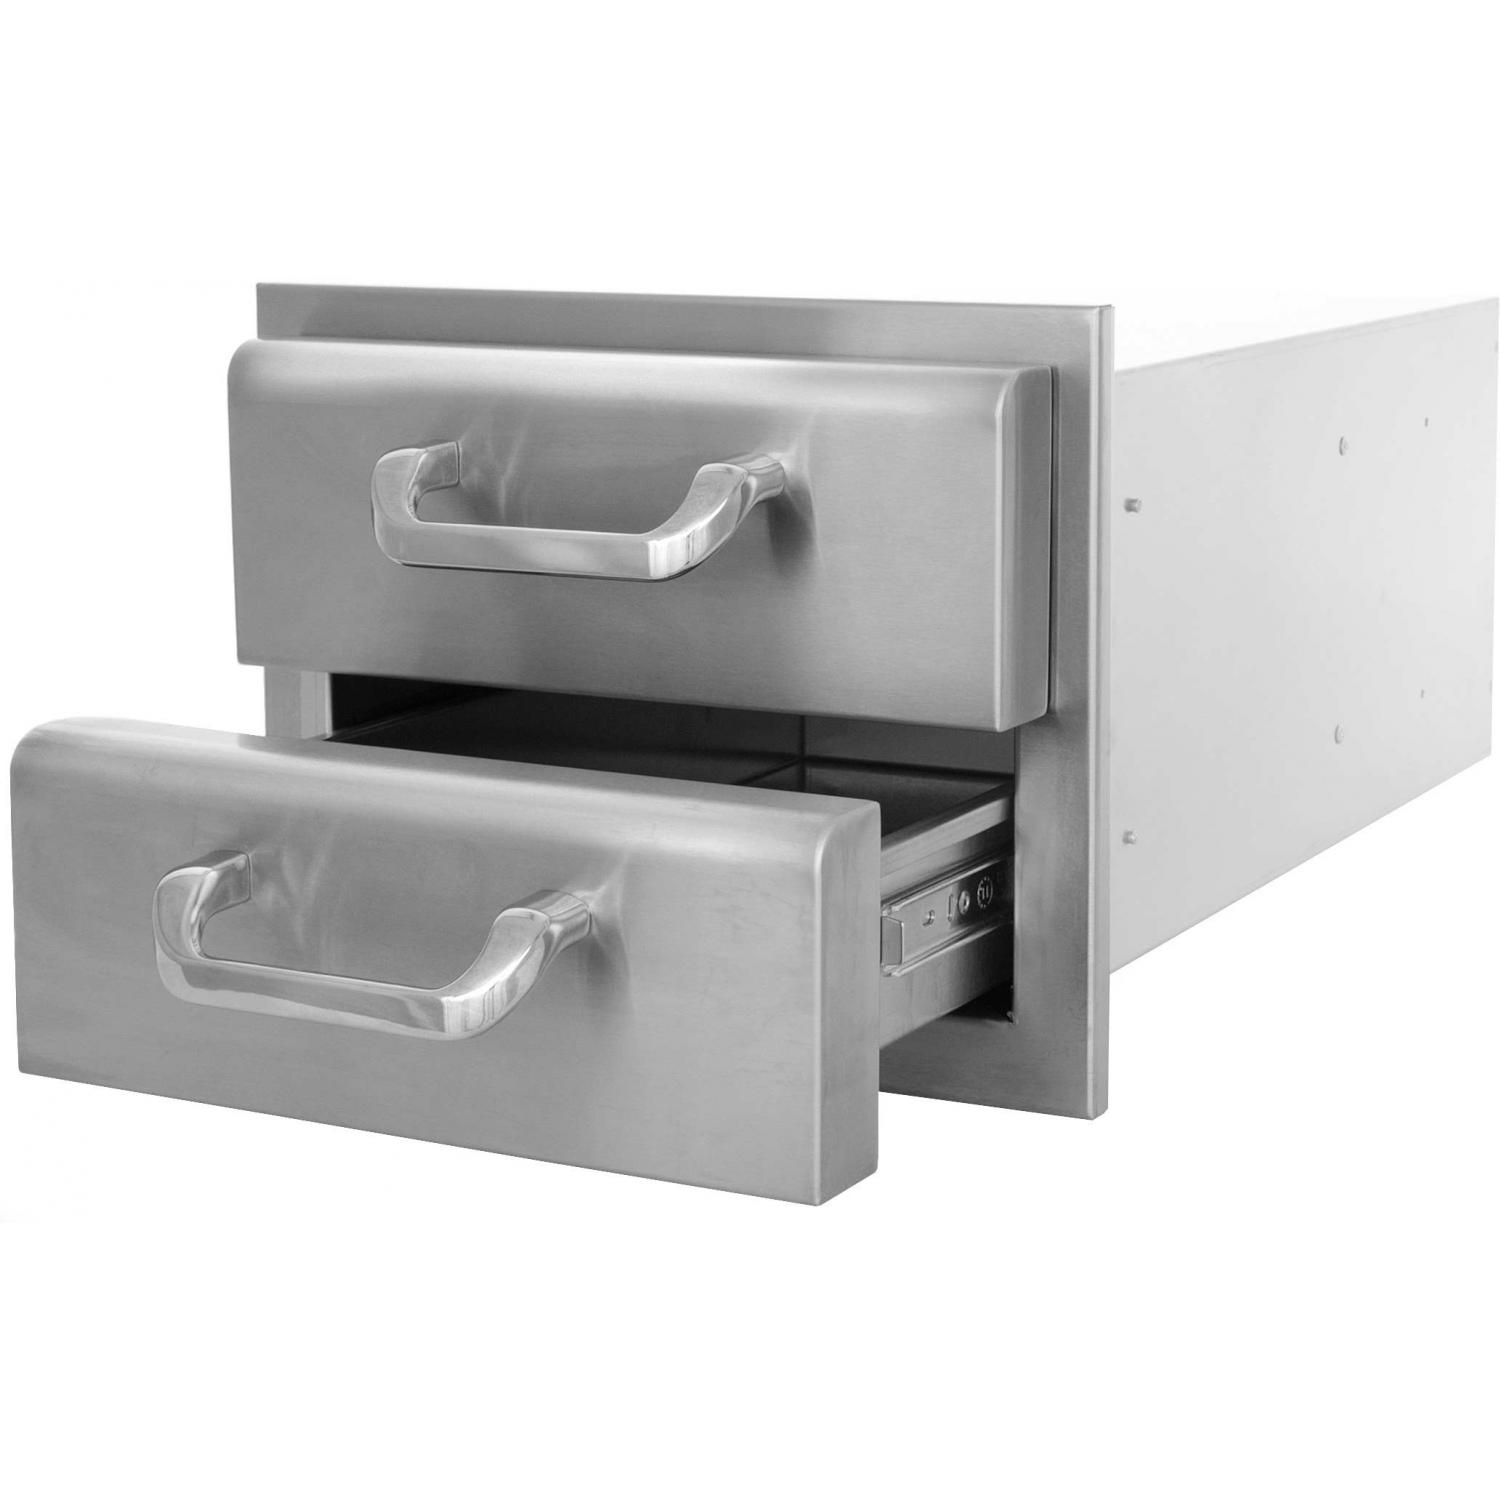 Picture of BBQGuys.com Kingston Raised Series 14 Inch Stainless Steel Double Access Drawer